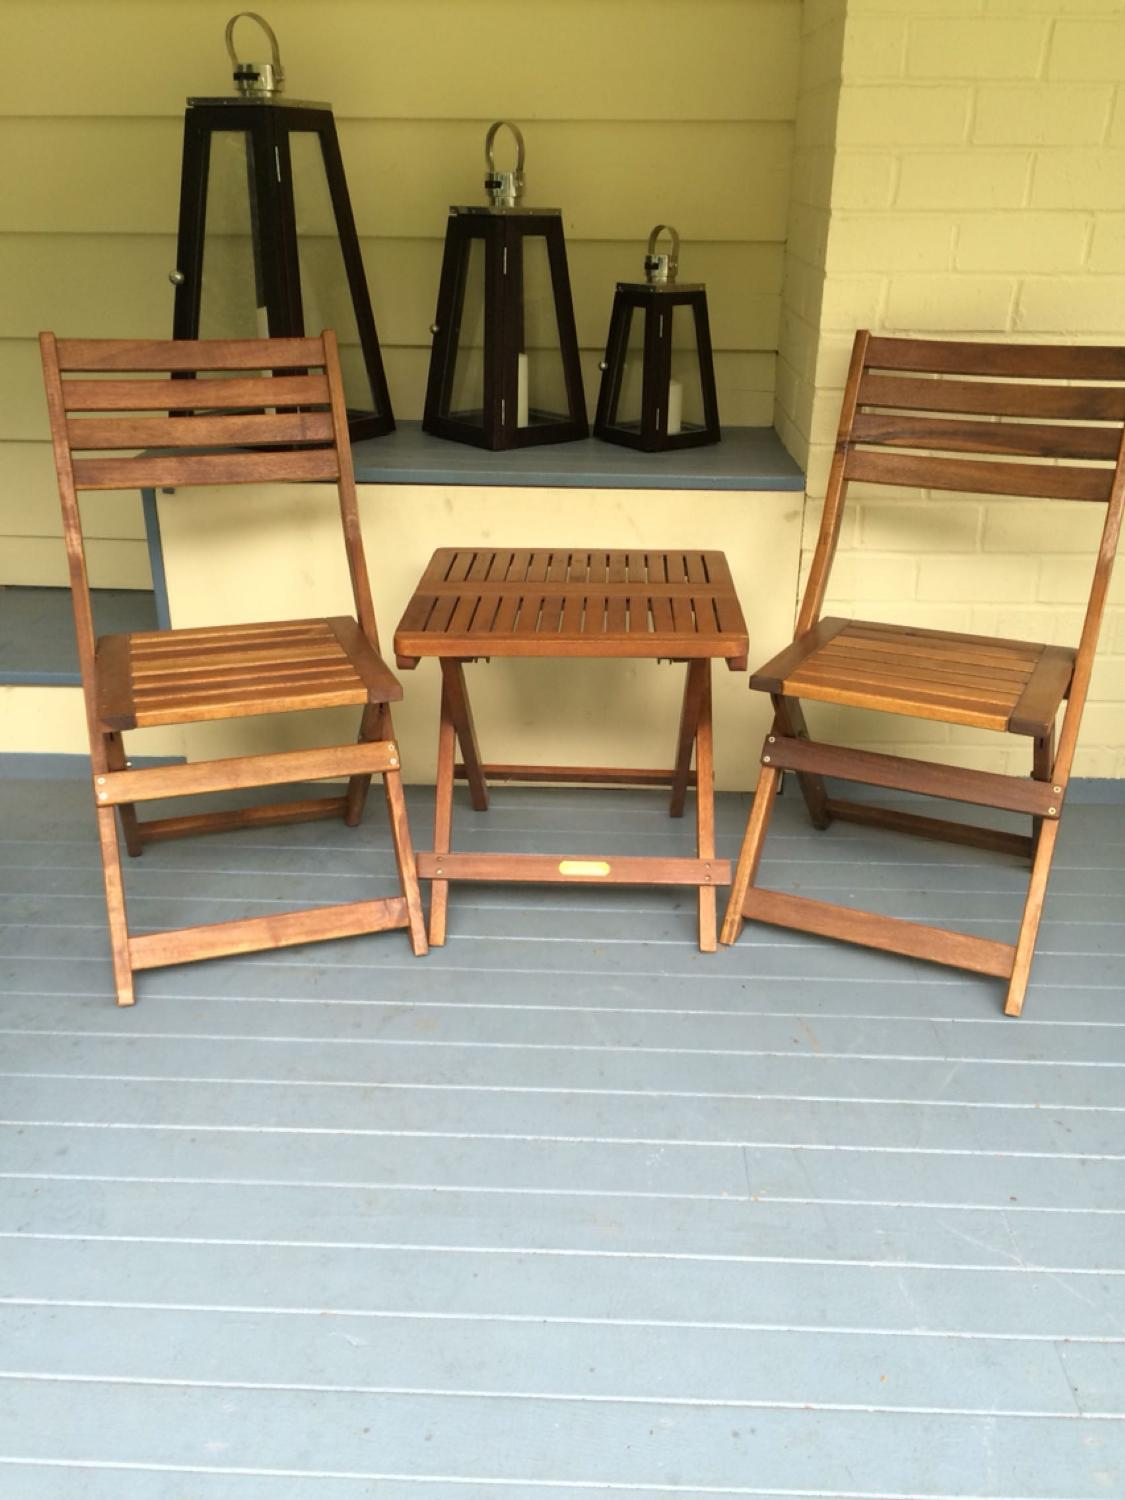 Find More Teak Patio Set Beaufort 10 By Scandinavian Design Brass Fittings Solid Table Measures 19 3 4 X19 3 4 X 20 L Height P U Tsawwassen For Sale At Up To 90 Off